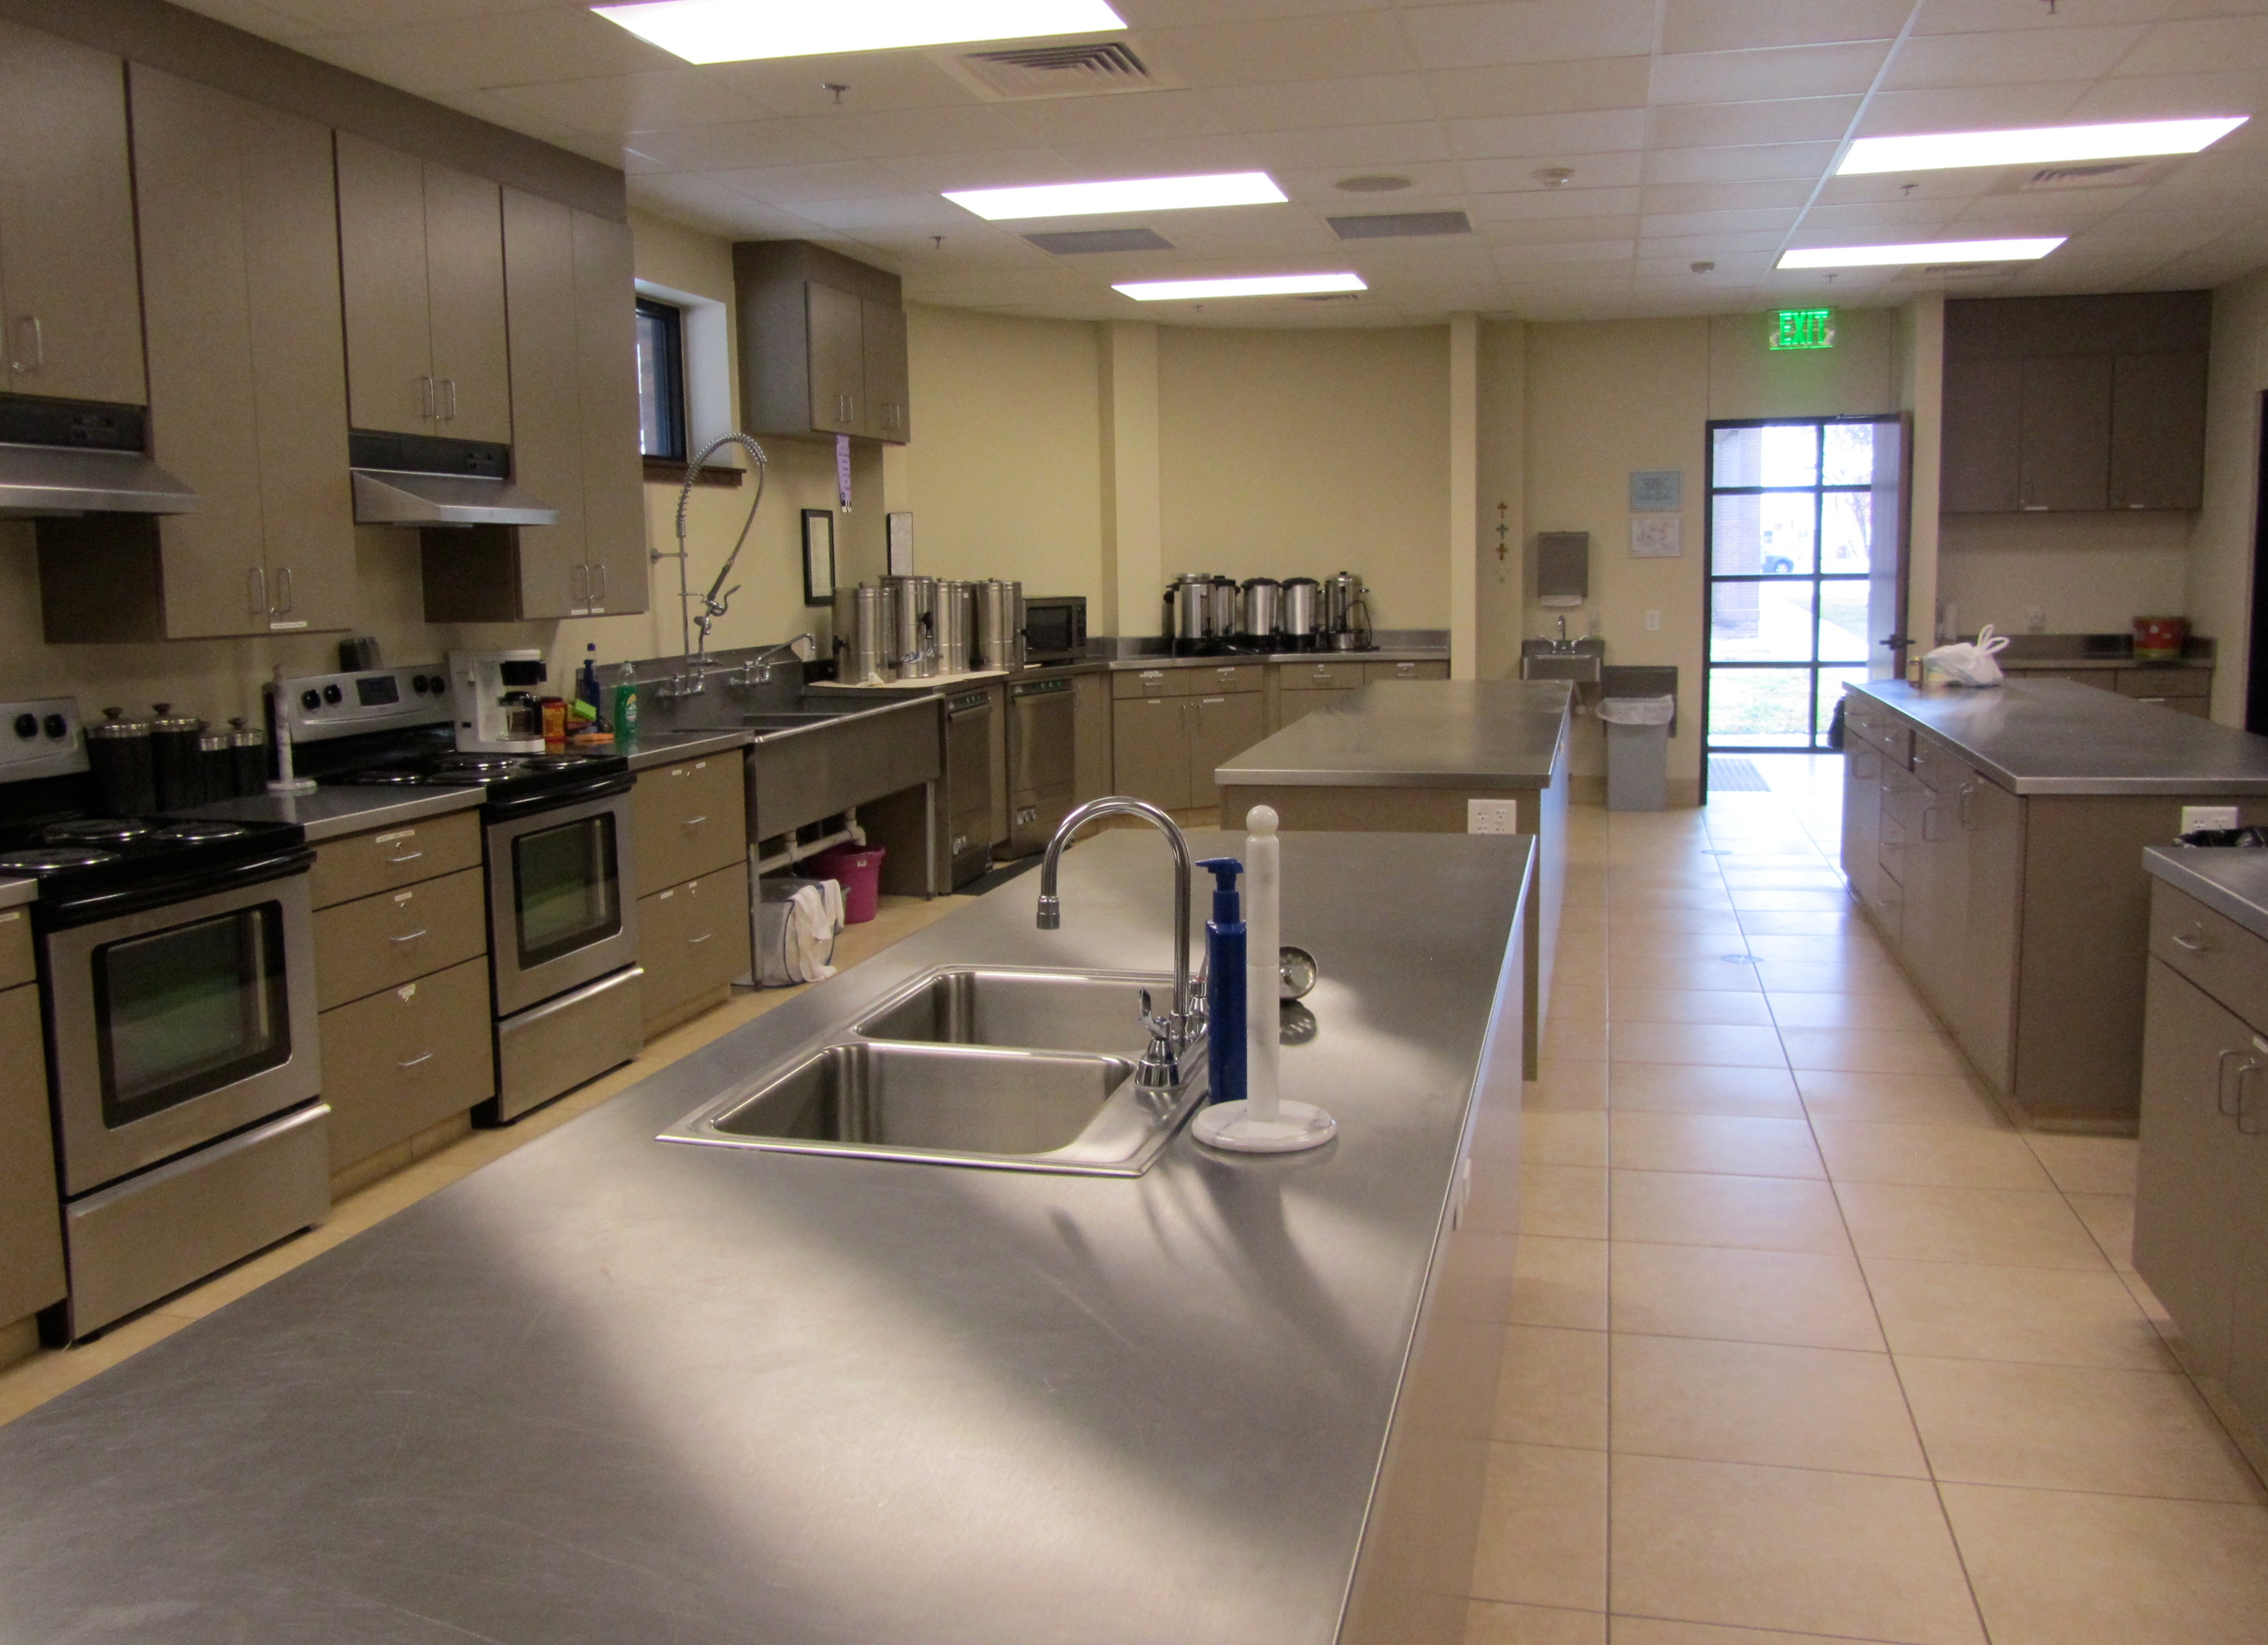 Church kitchens and accessibility 5 issues to consider for Hall kitchen design